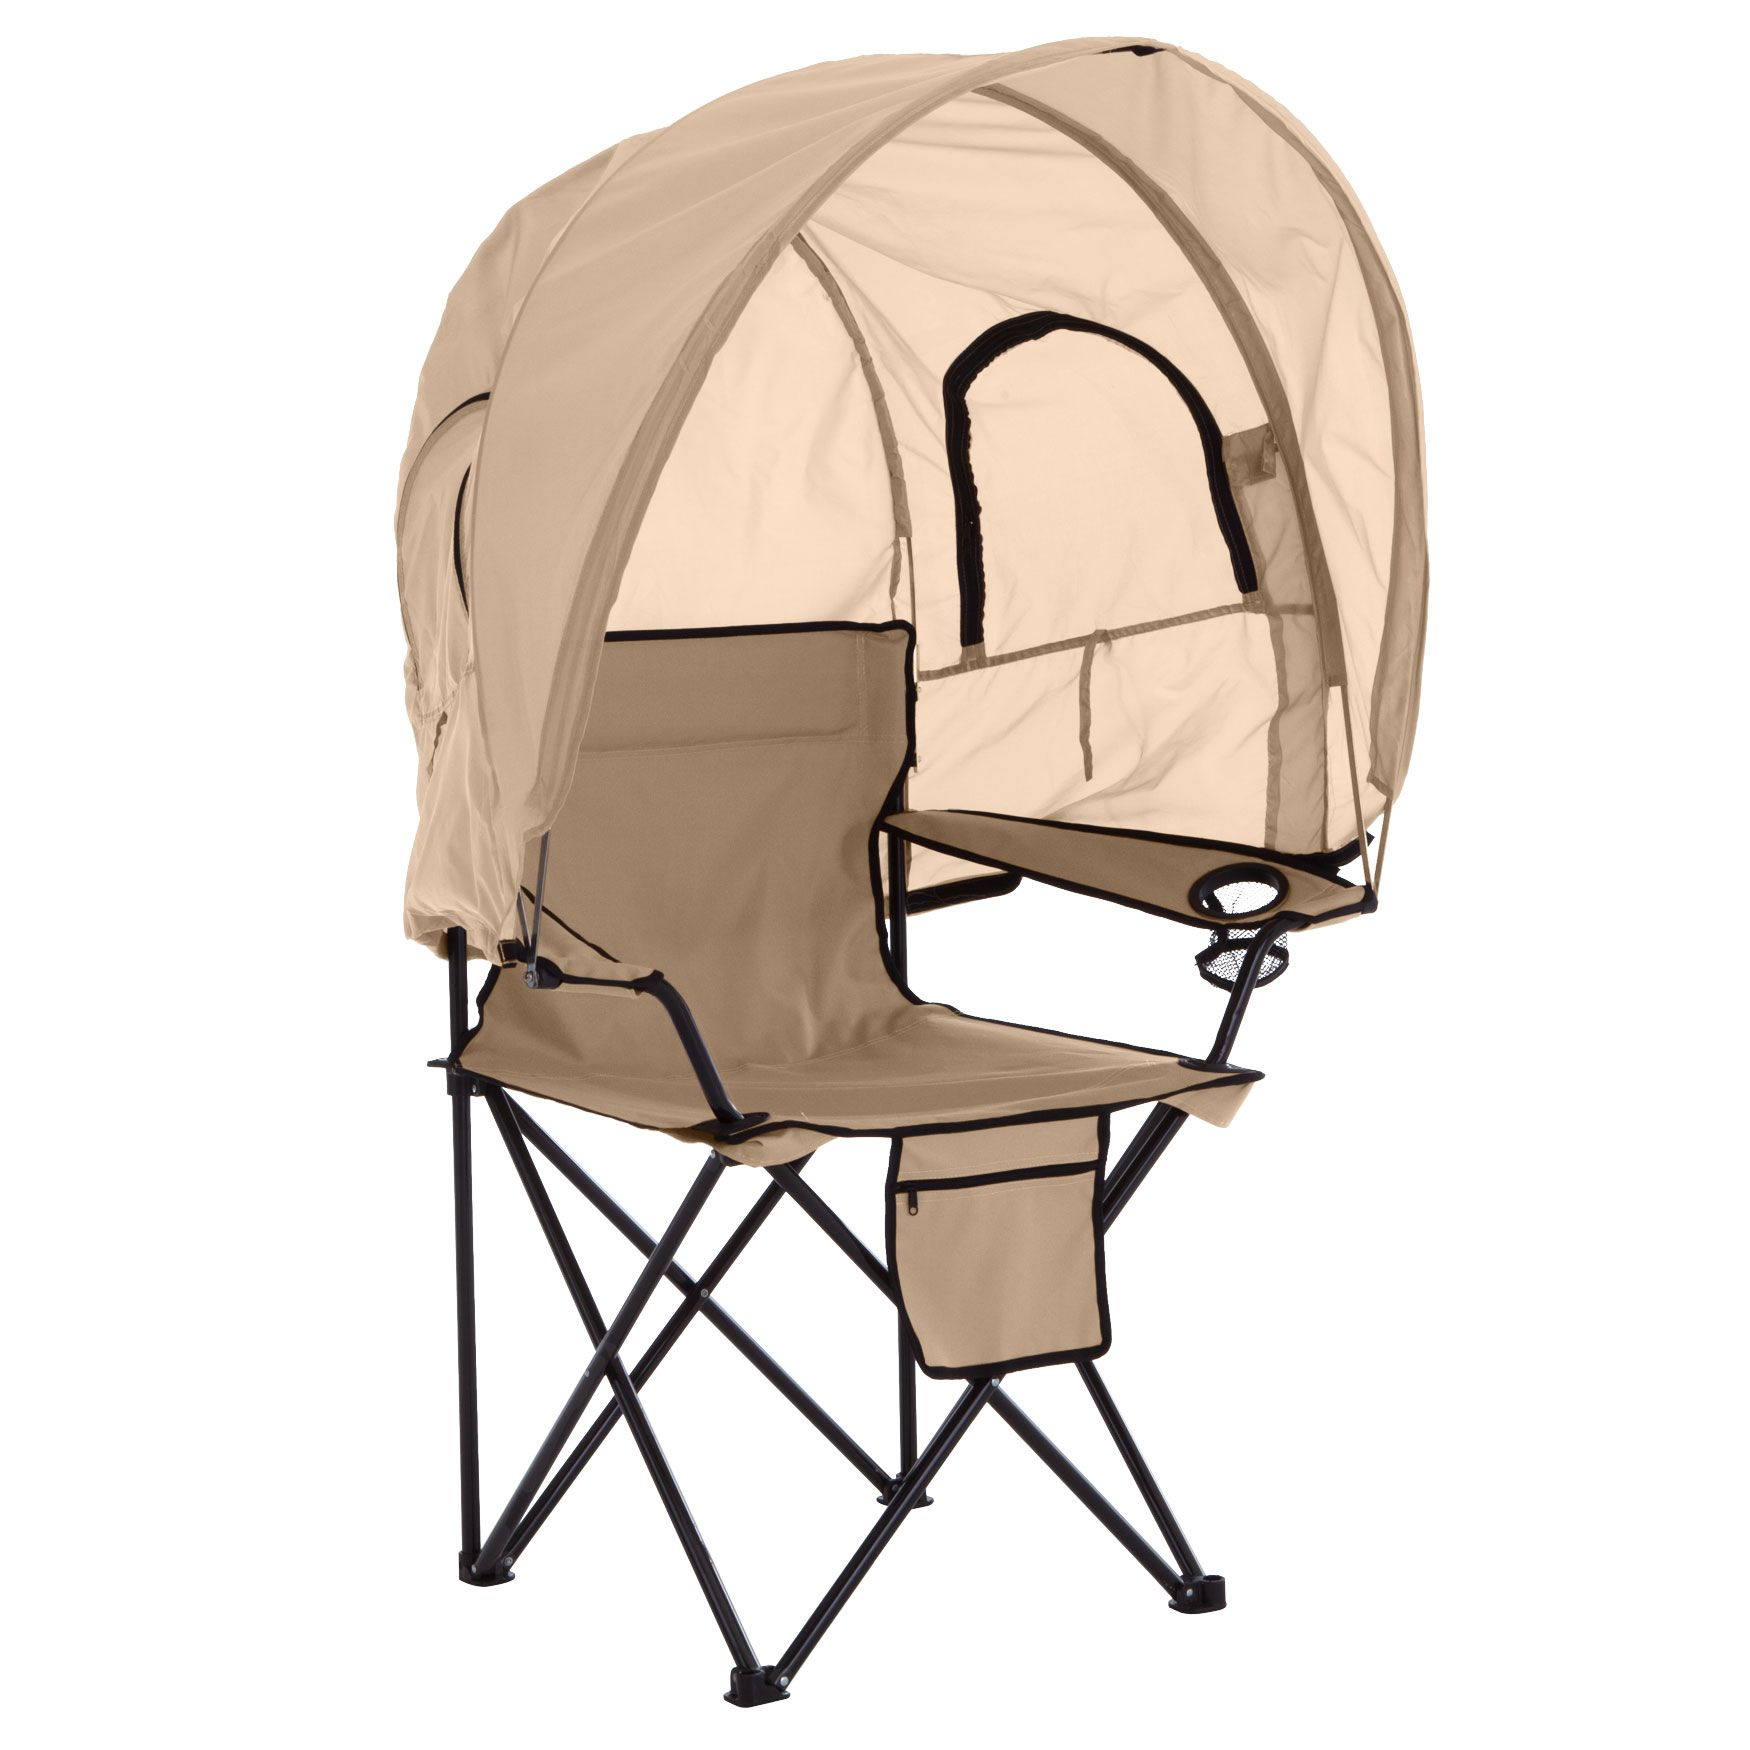 Camp Chair With Canopy Plus Size Beach Chairs Brylane Home